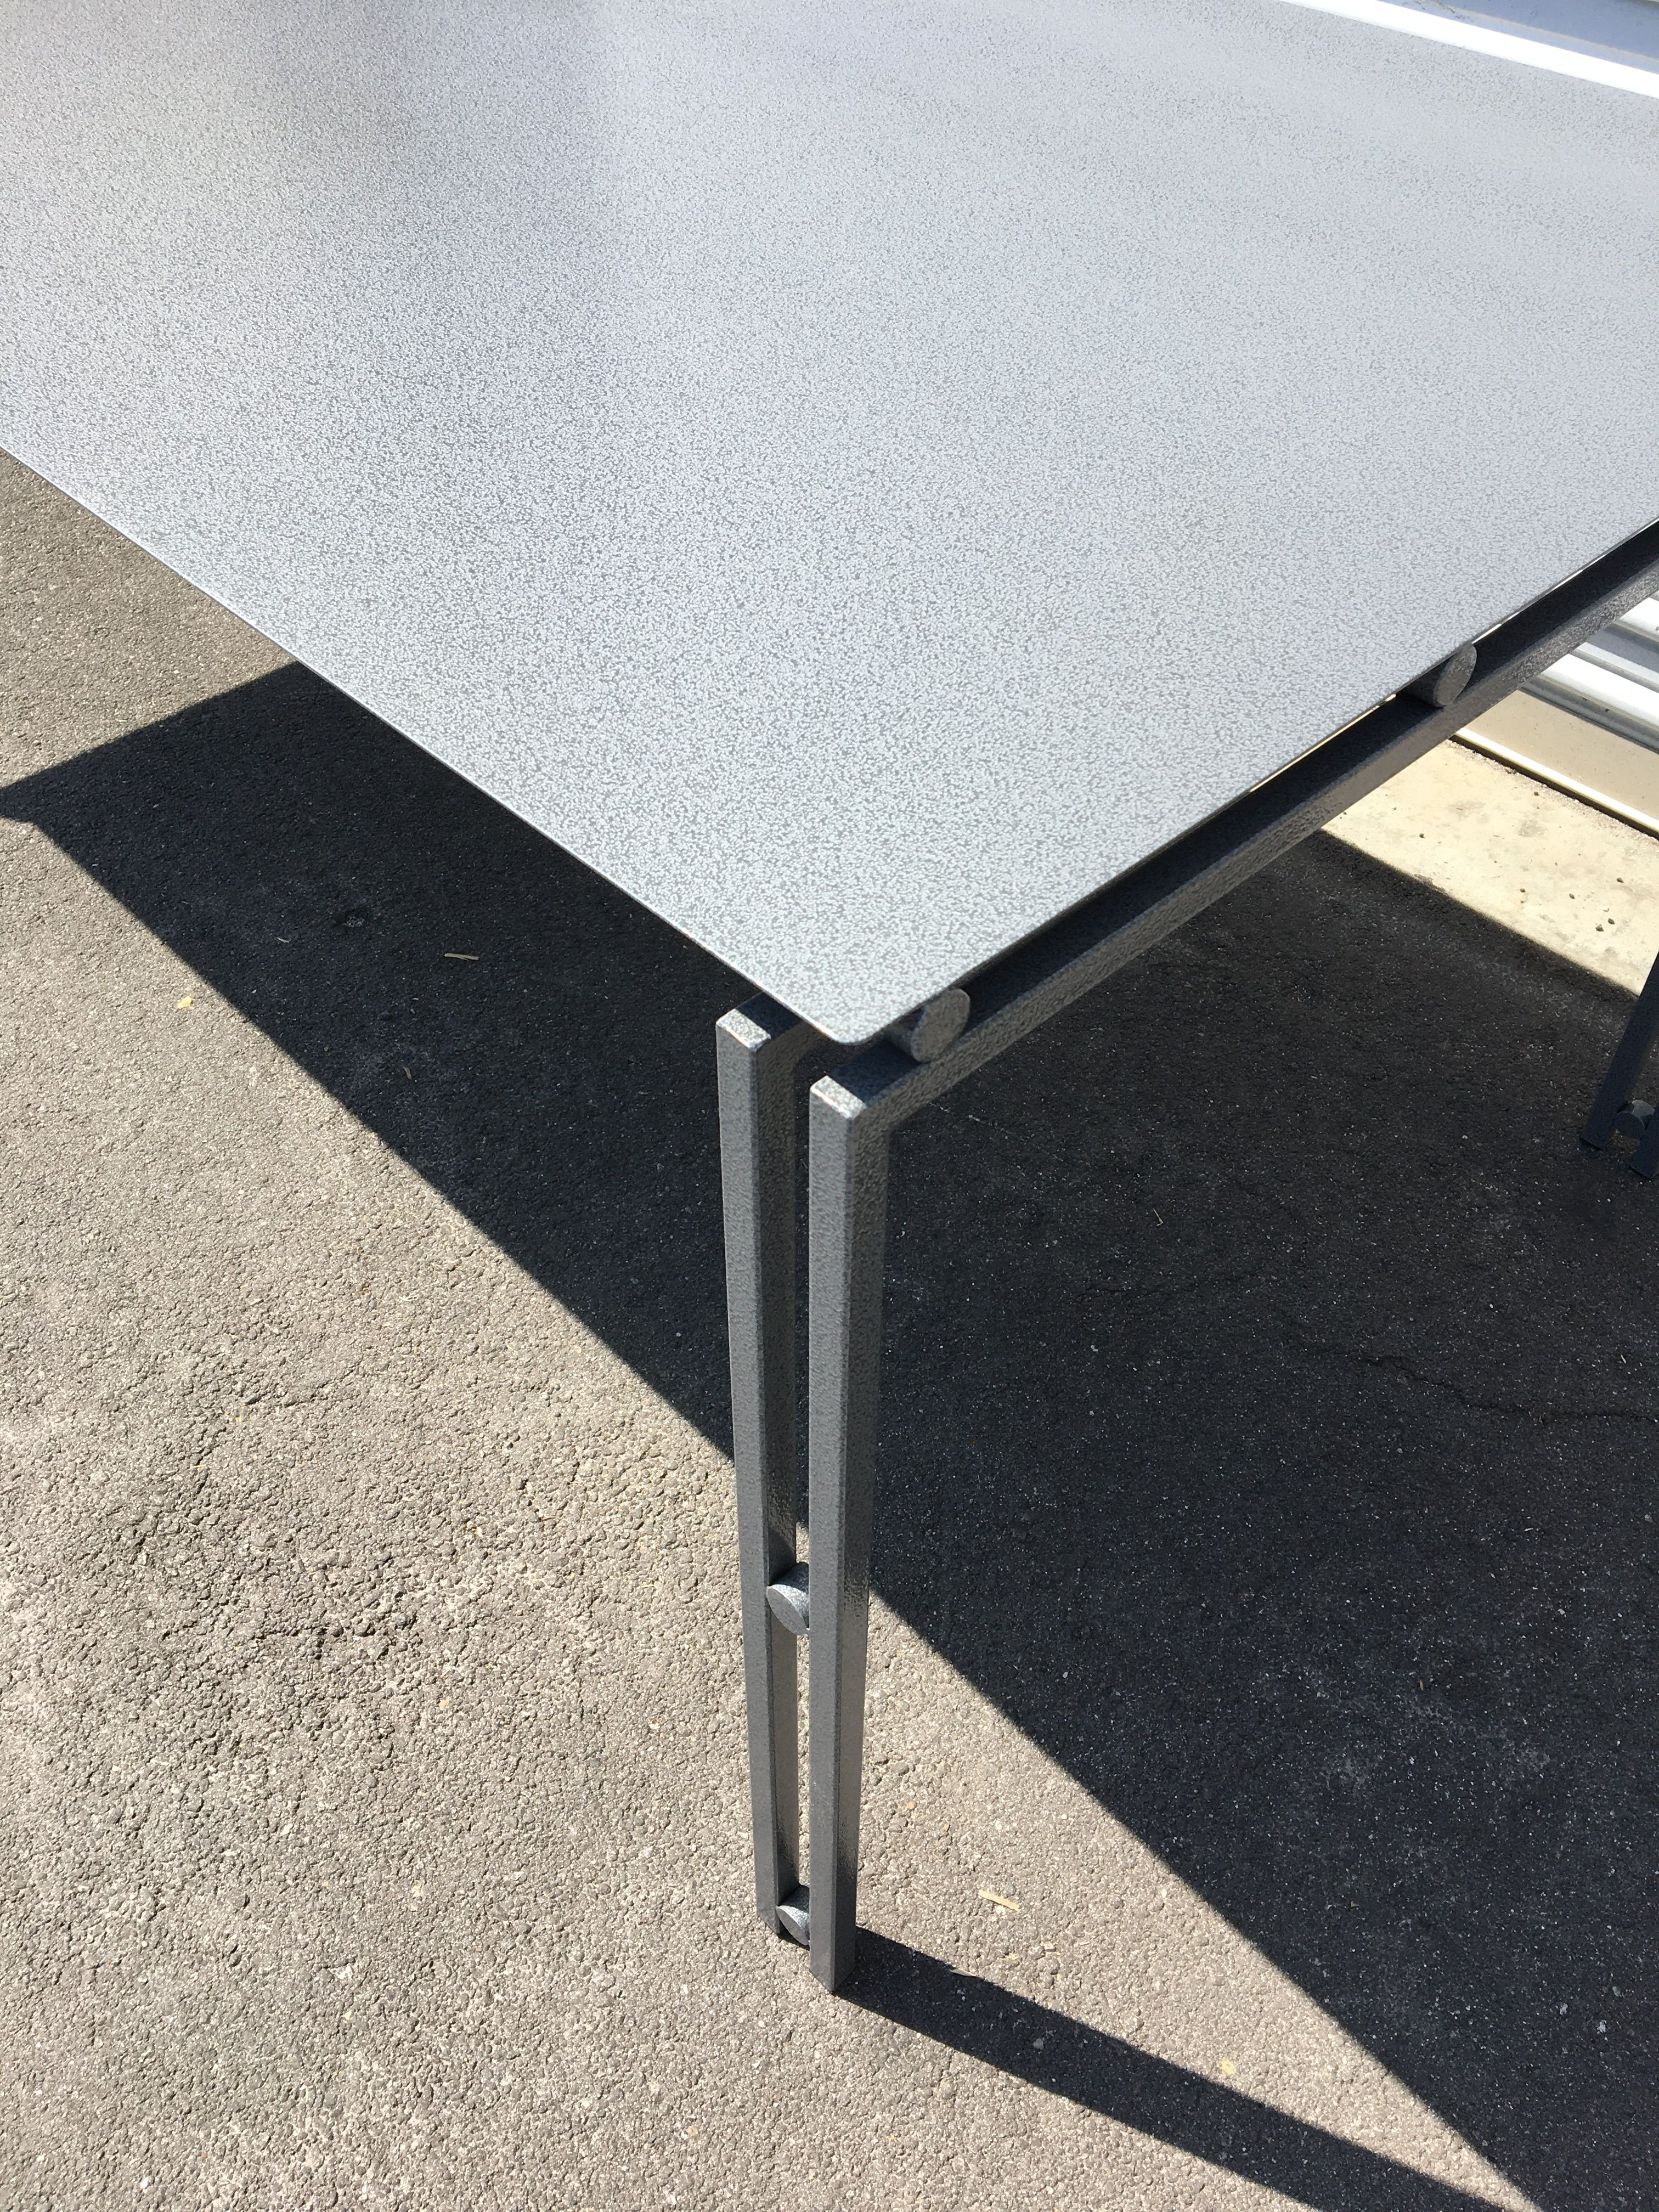 Suspension Metal Dining Table - Mid Size product image 4